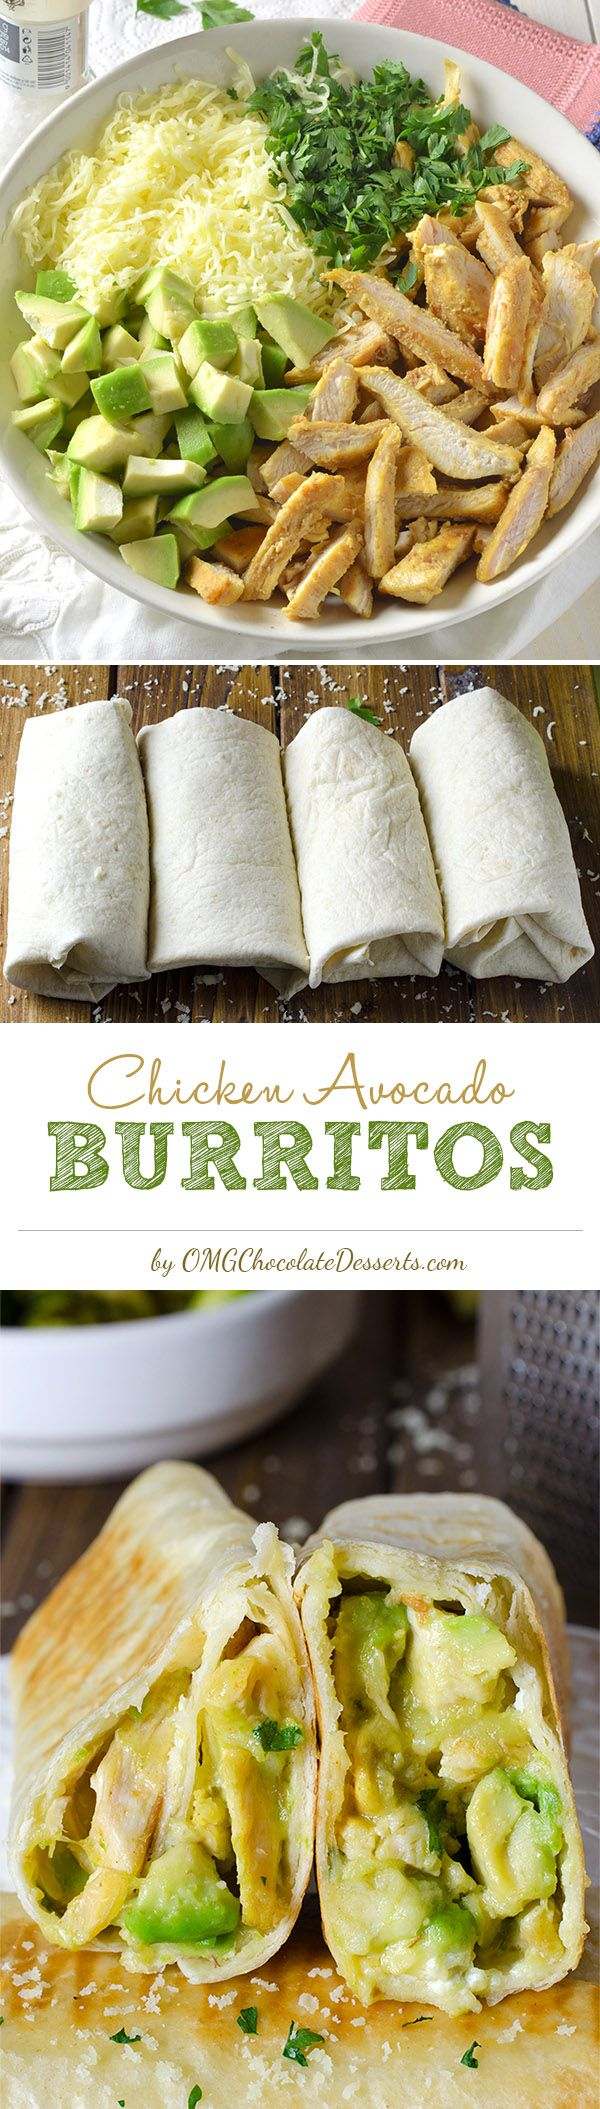 coach purses If you are in a big hurry to prepare a beautiful lunch or dinner  maybe it  39 s time for you to try the healthy and easy Chicken Avocado Burritos